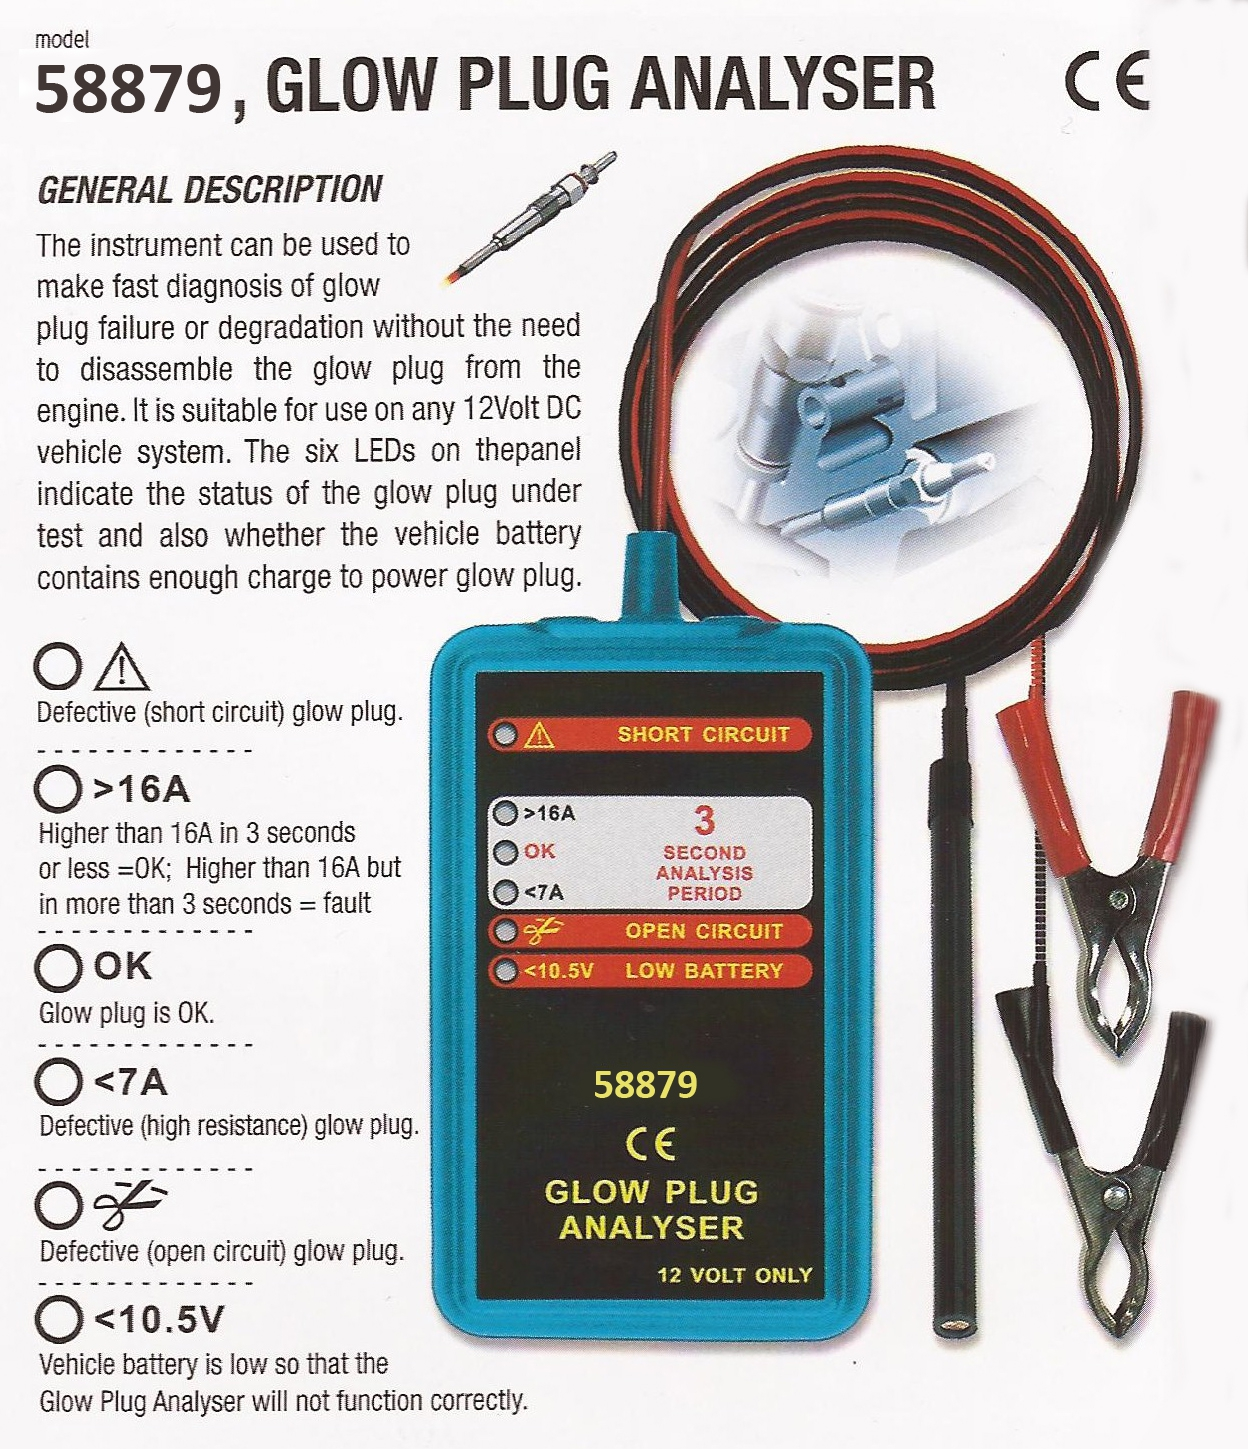 description_of_Glow_Plug_Analyser_58879